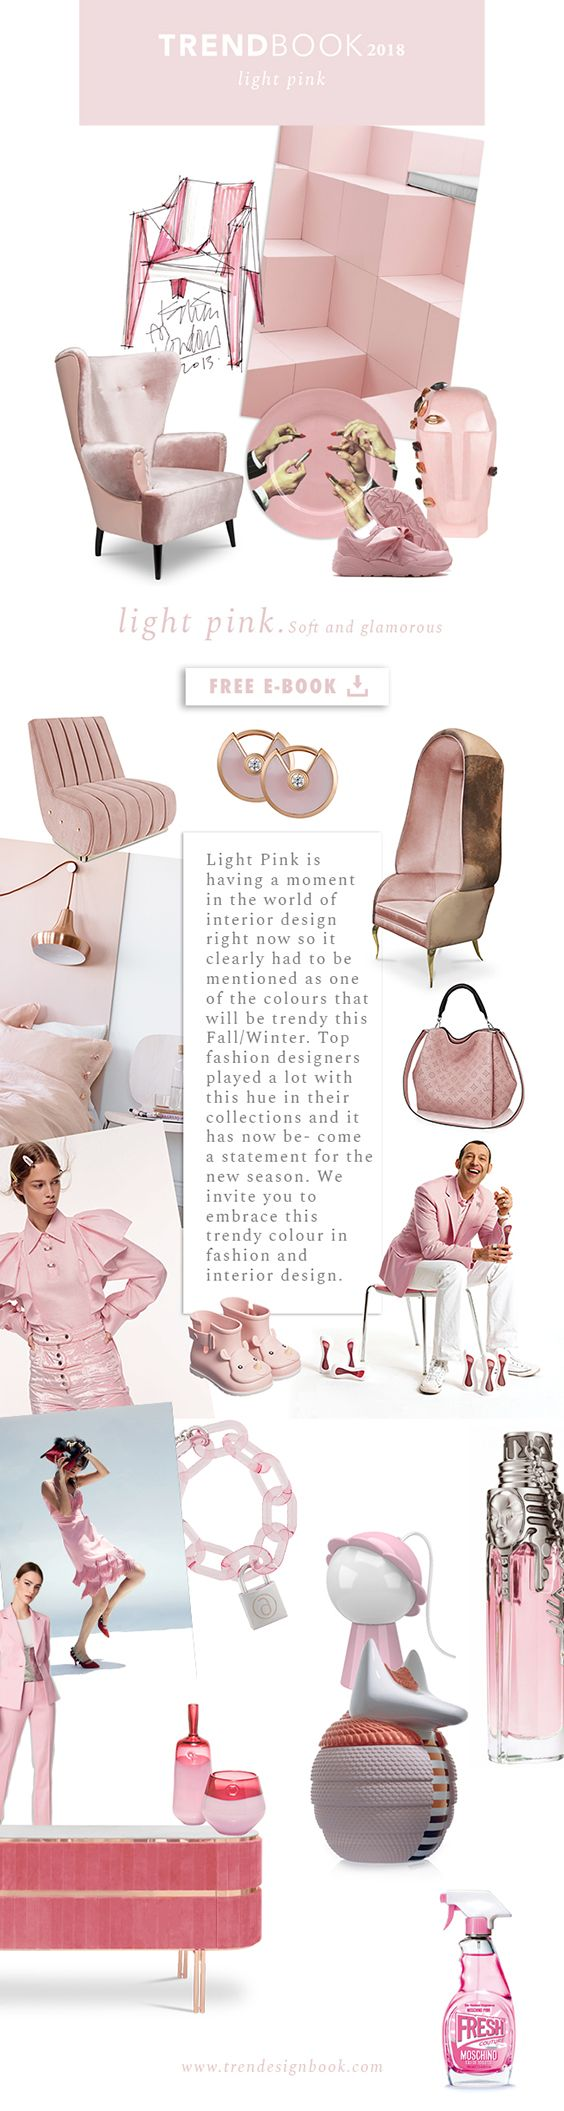 Color trends Fall/Winter 2017/18 Light Pink